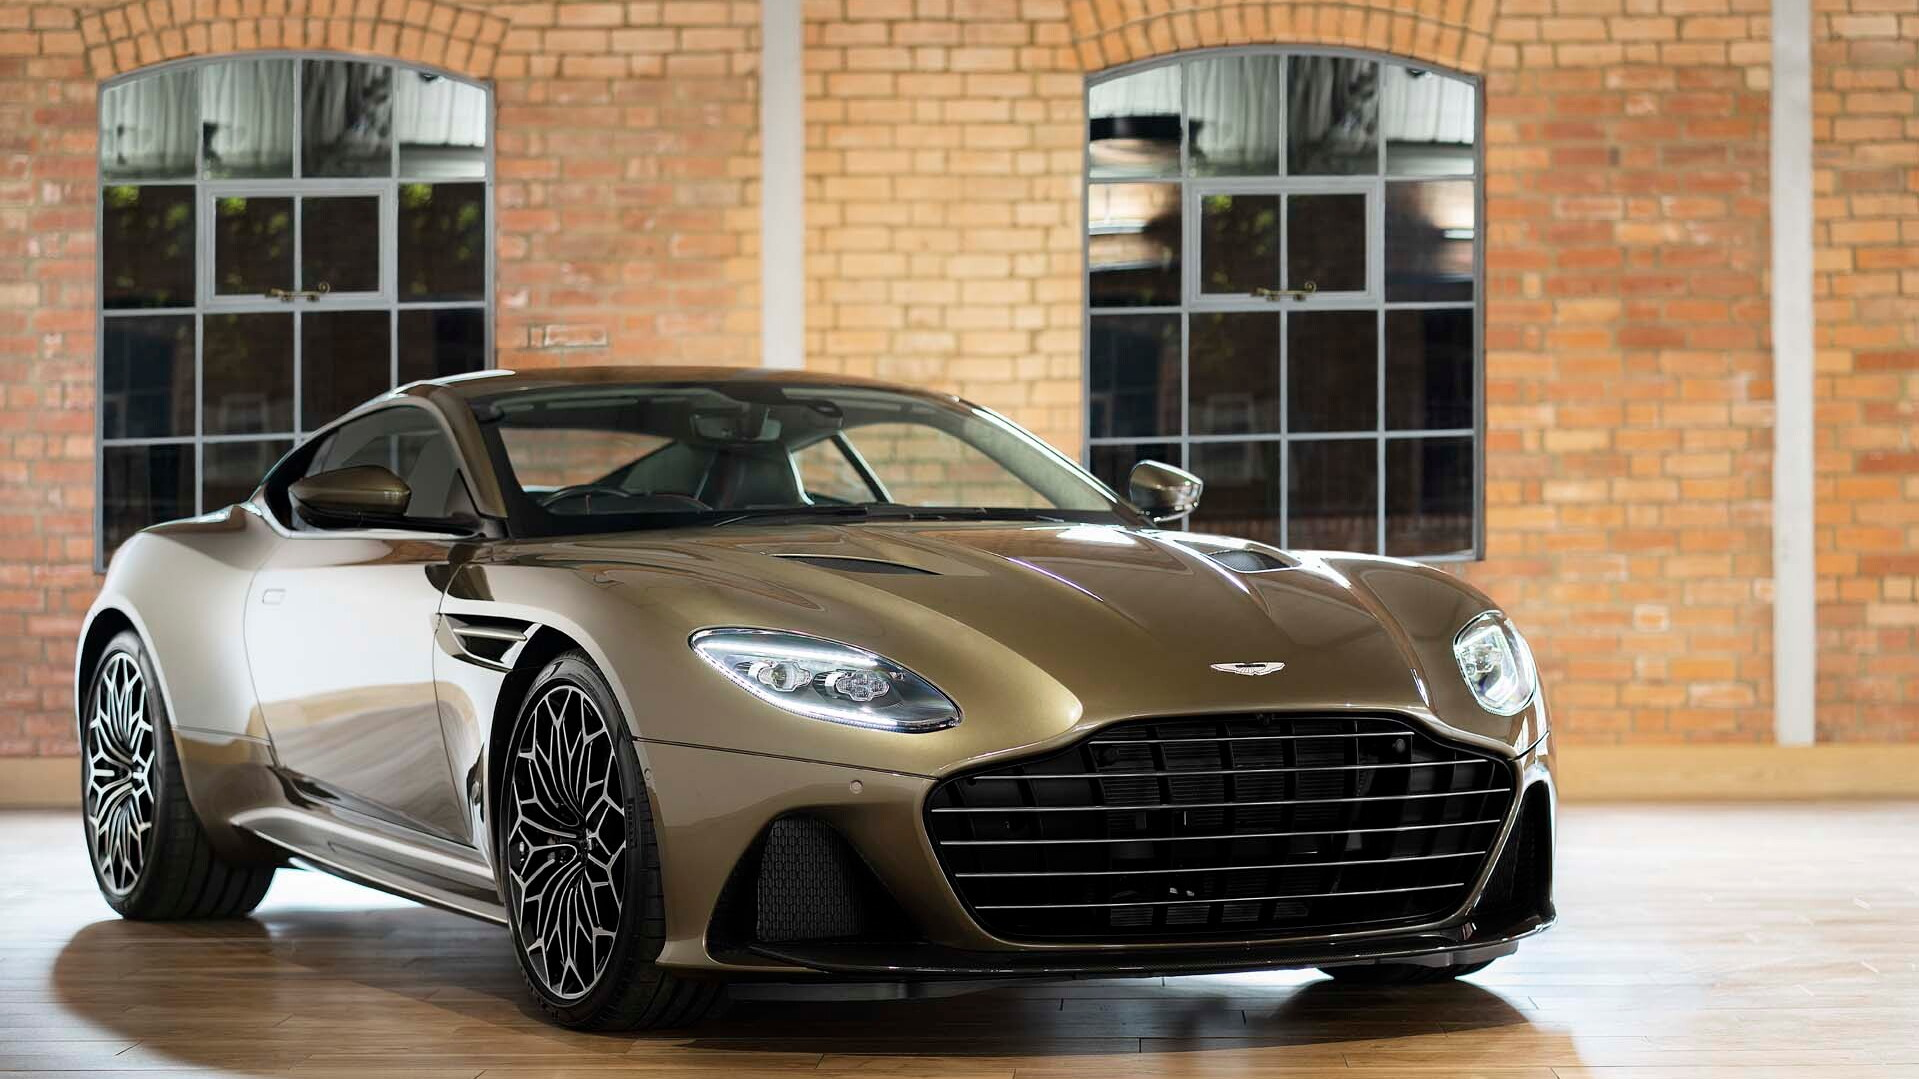 Aston Martin DBS Superleggera James Bond edition announced